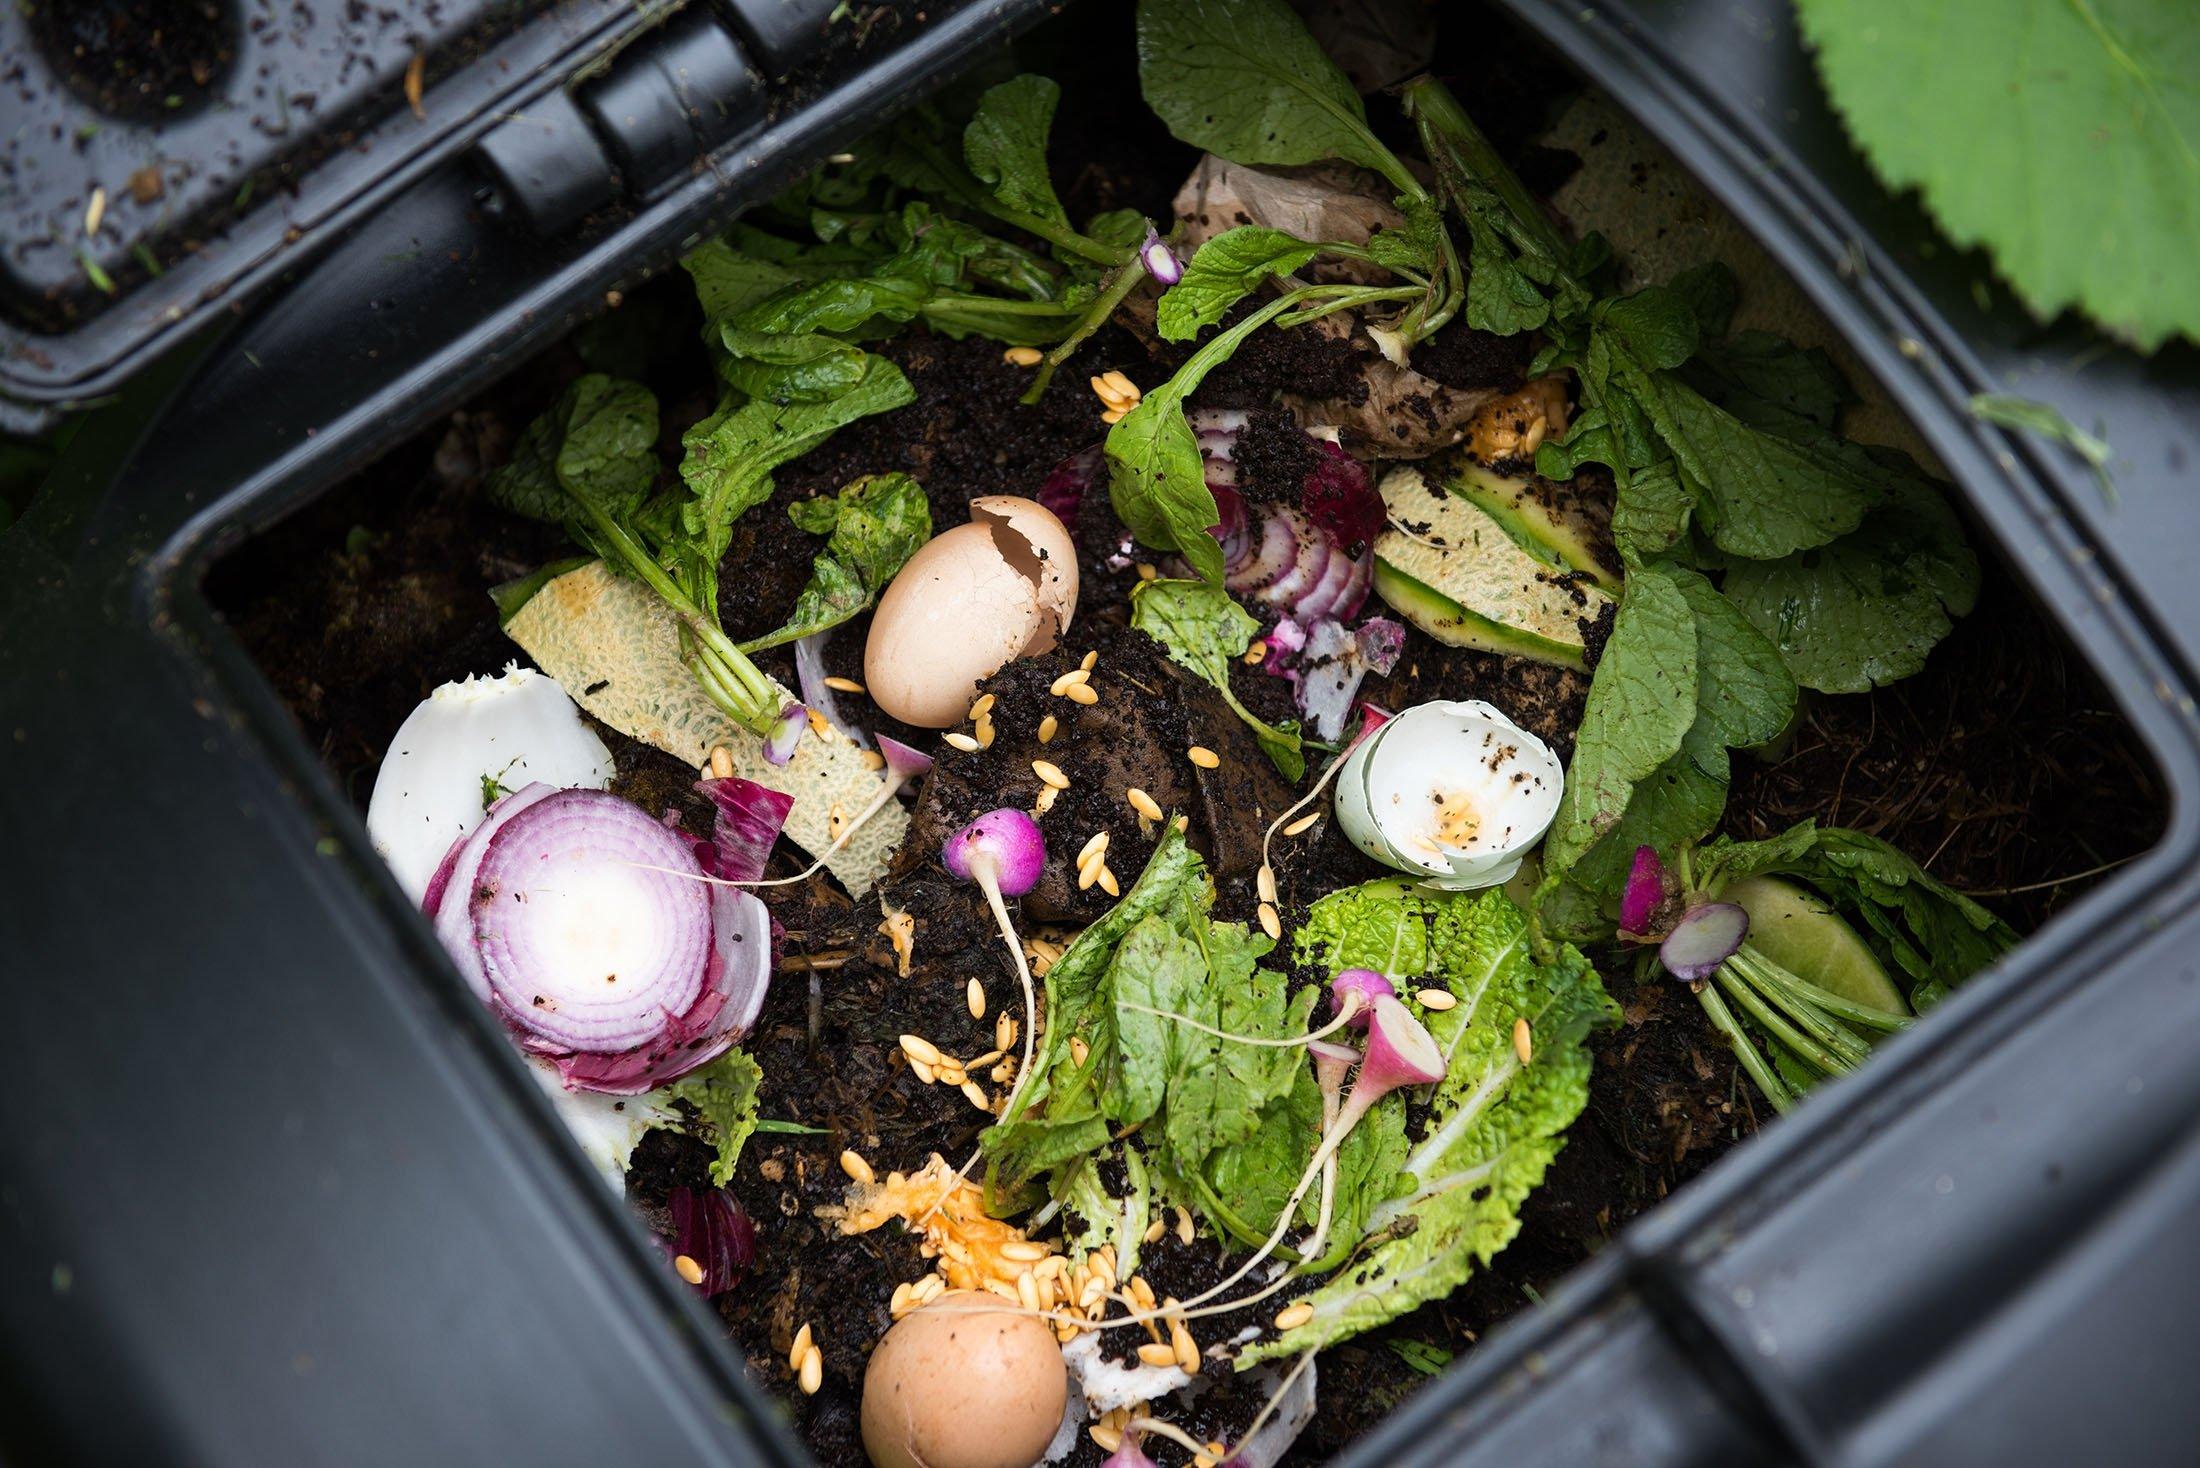 Composting is a great way to make use of your food scraps and grass cuttings. (Shutterstock Photo)